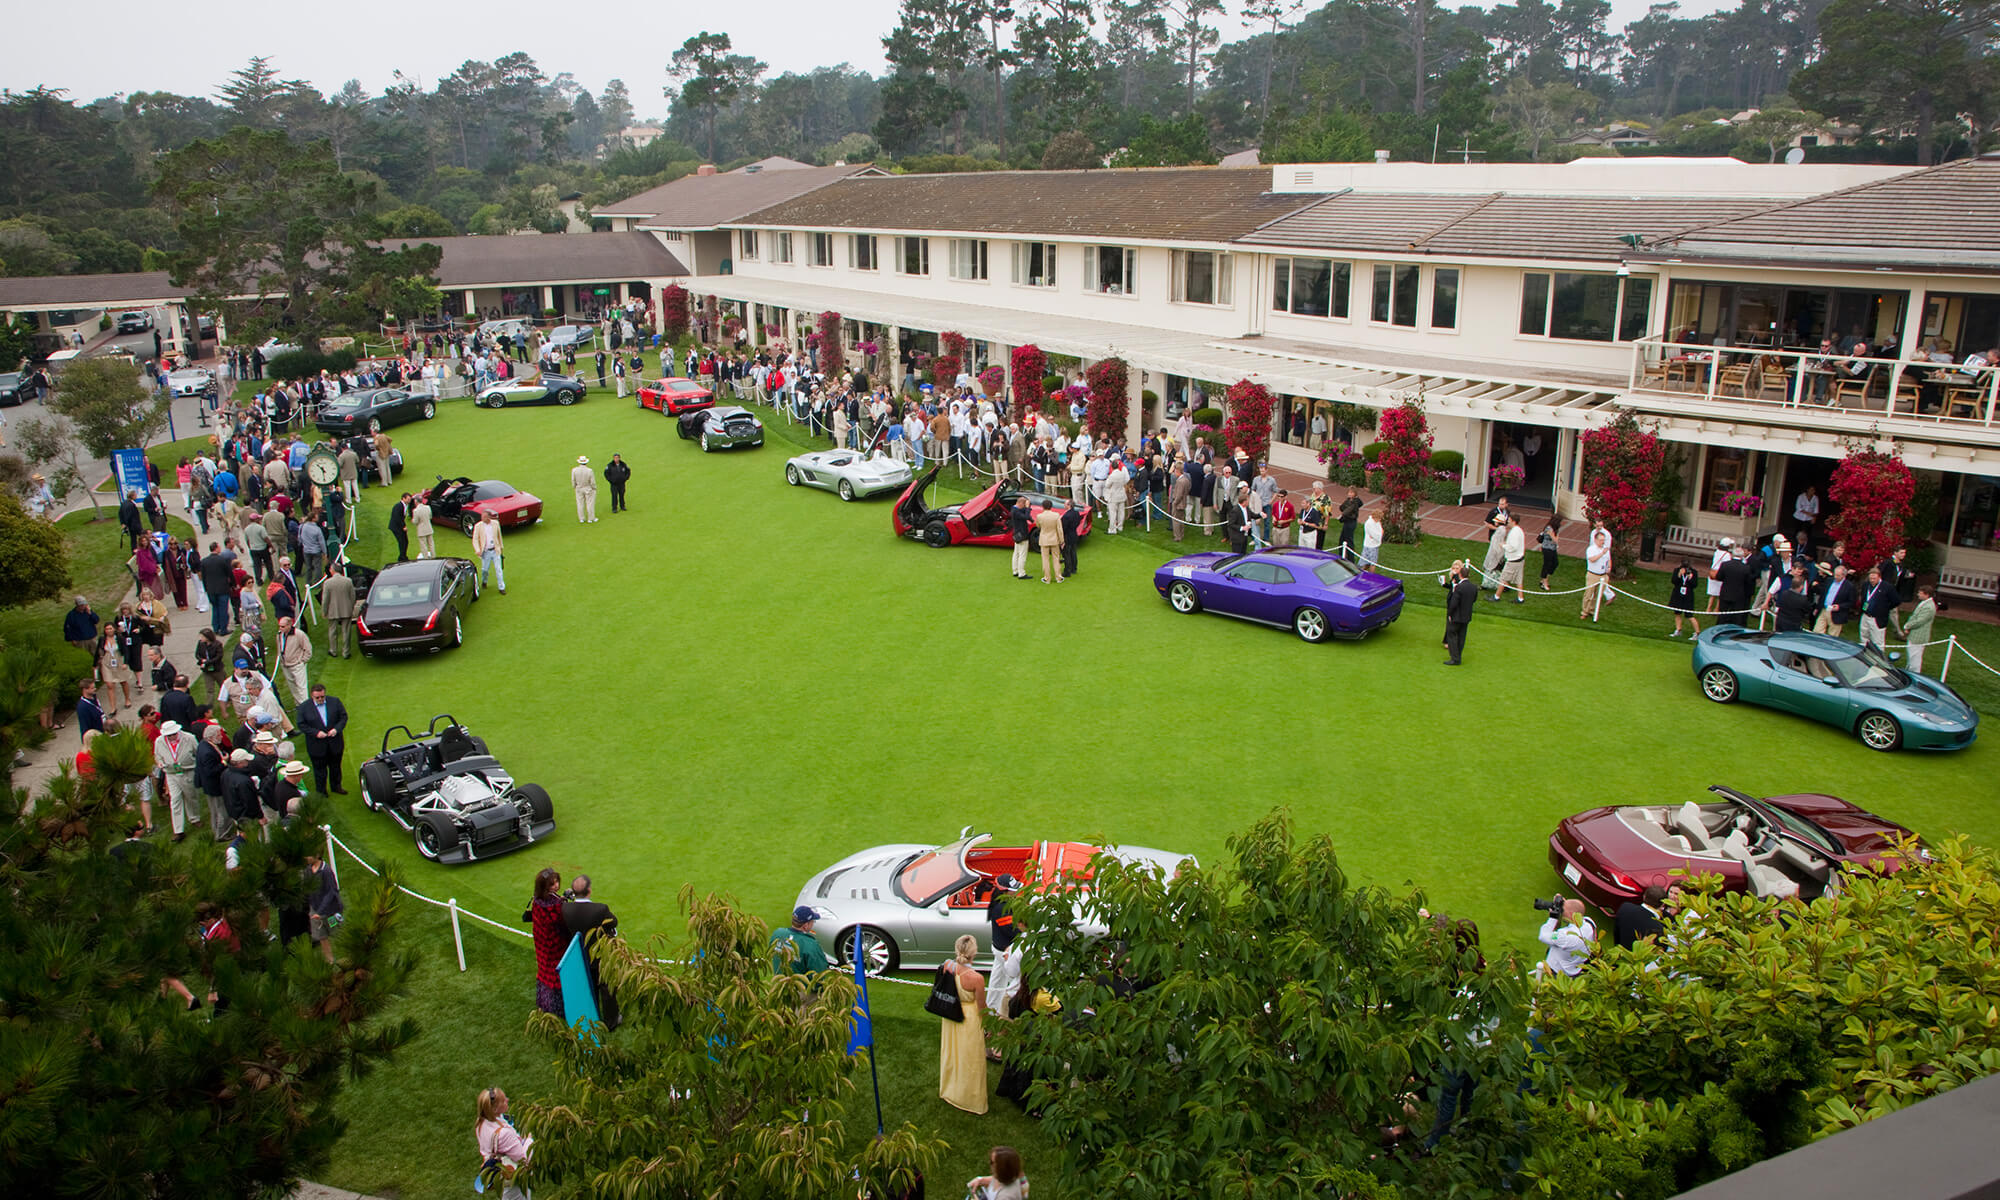 Concours d'Elegance cars on lawn